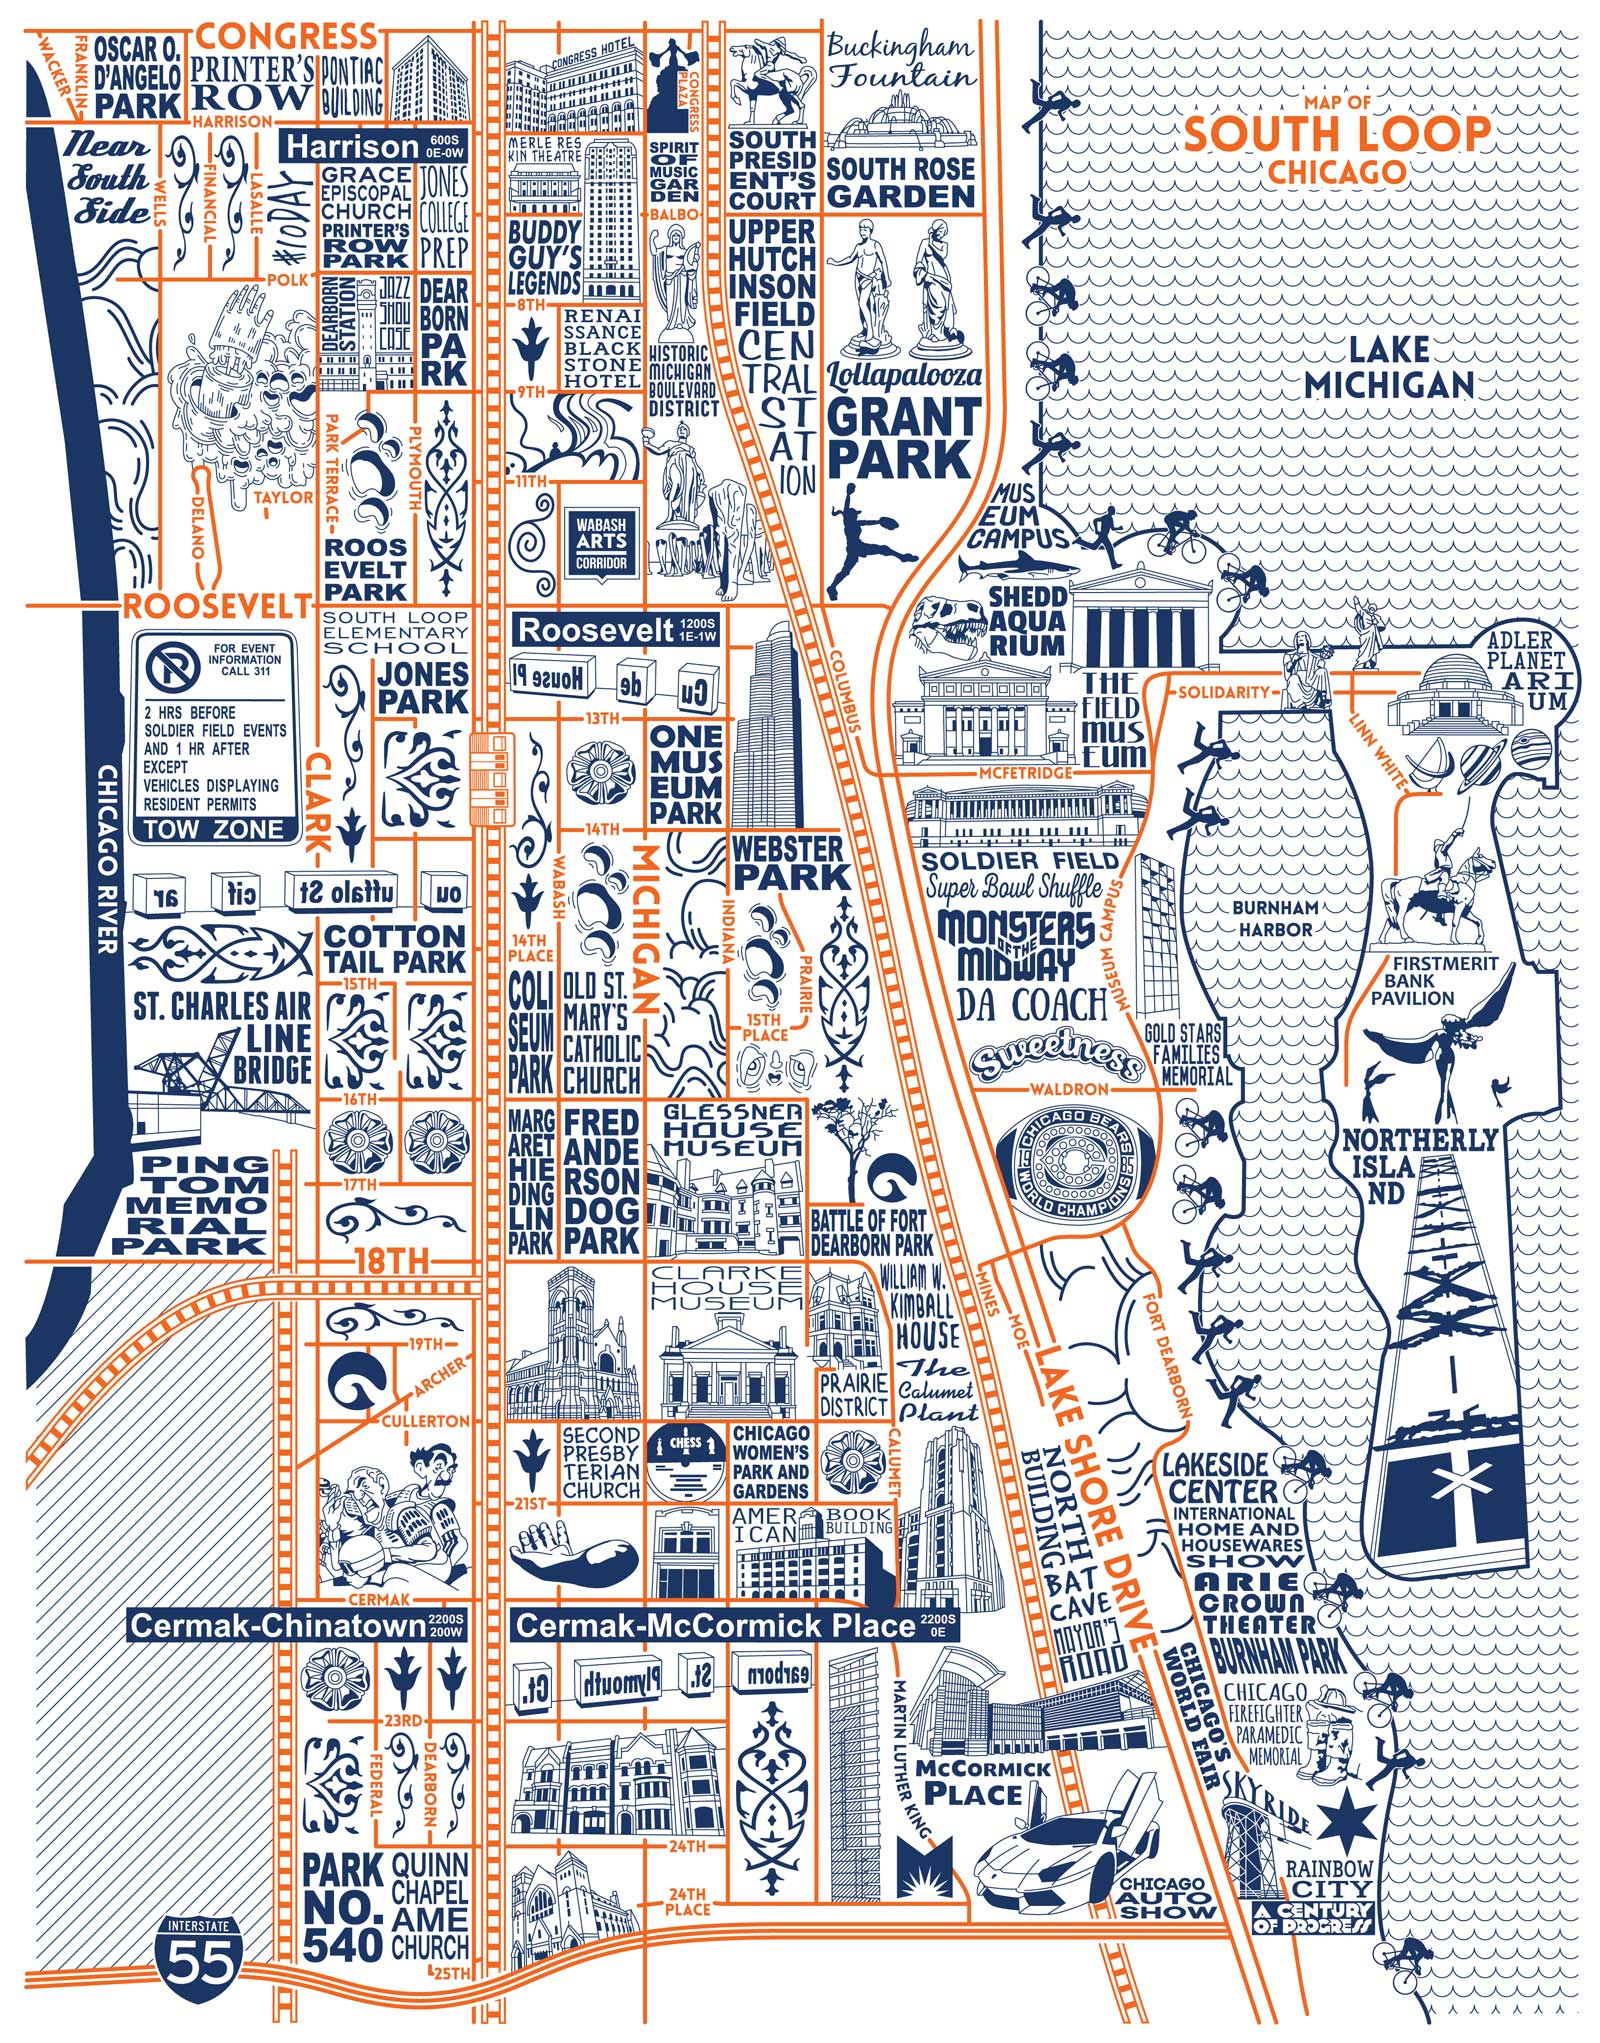 South Loop Map -  Purchase a map here